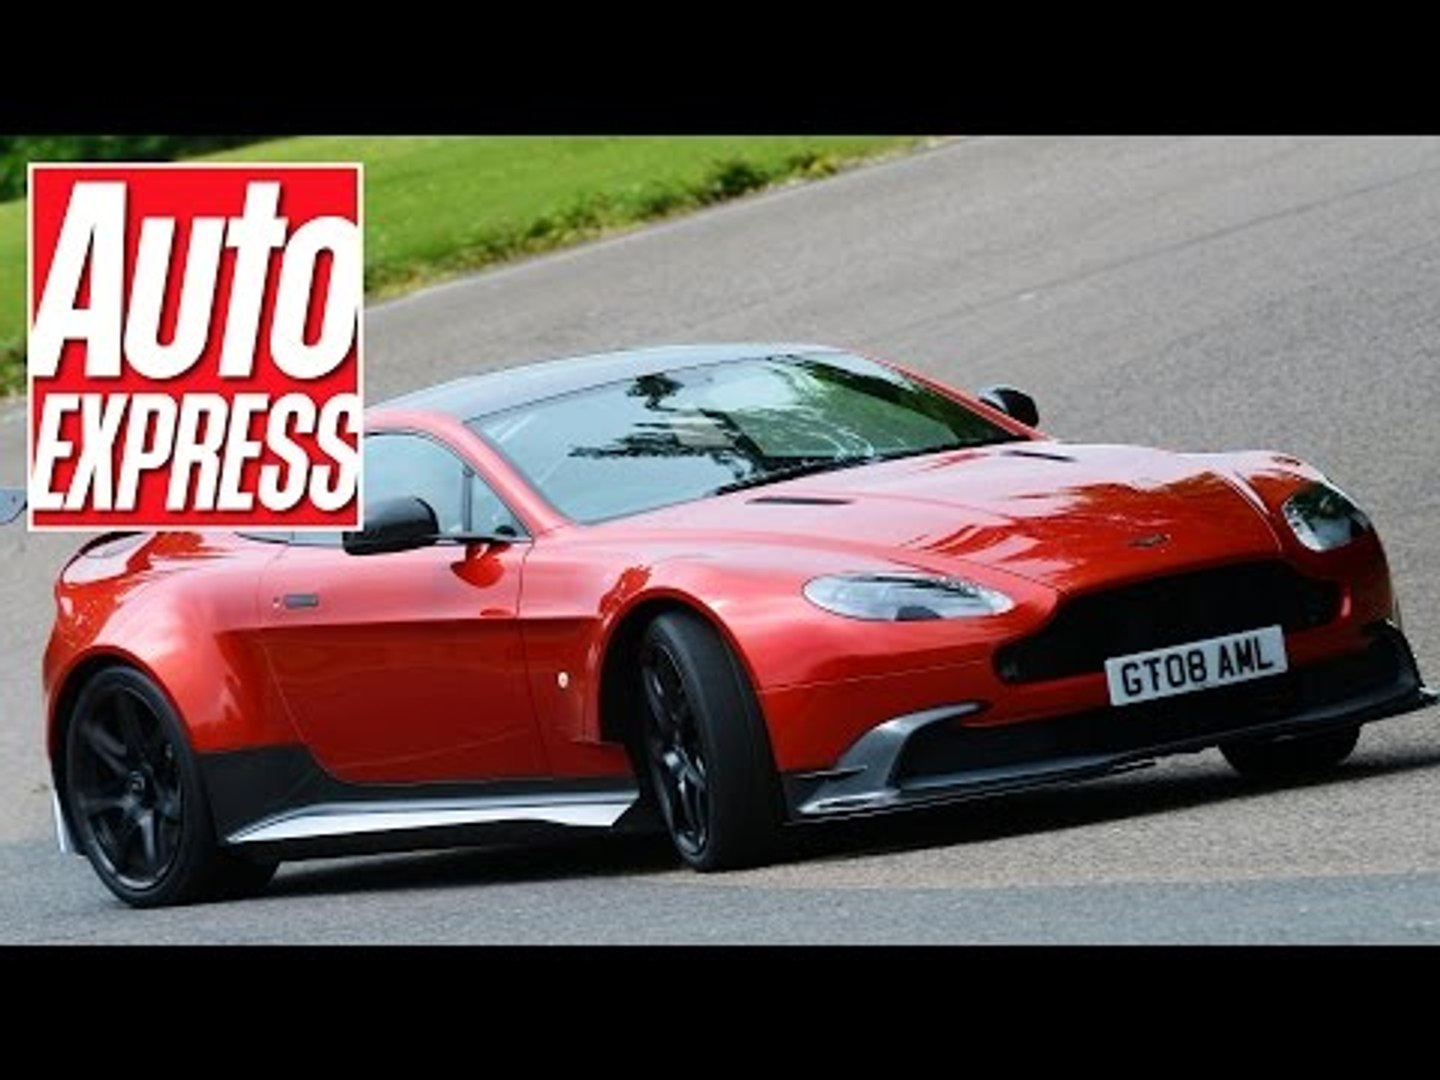 Aston Martin Vantage Gt8 Review The Best Aston To Drive Ever Video Dailymotion